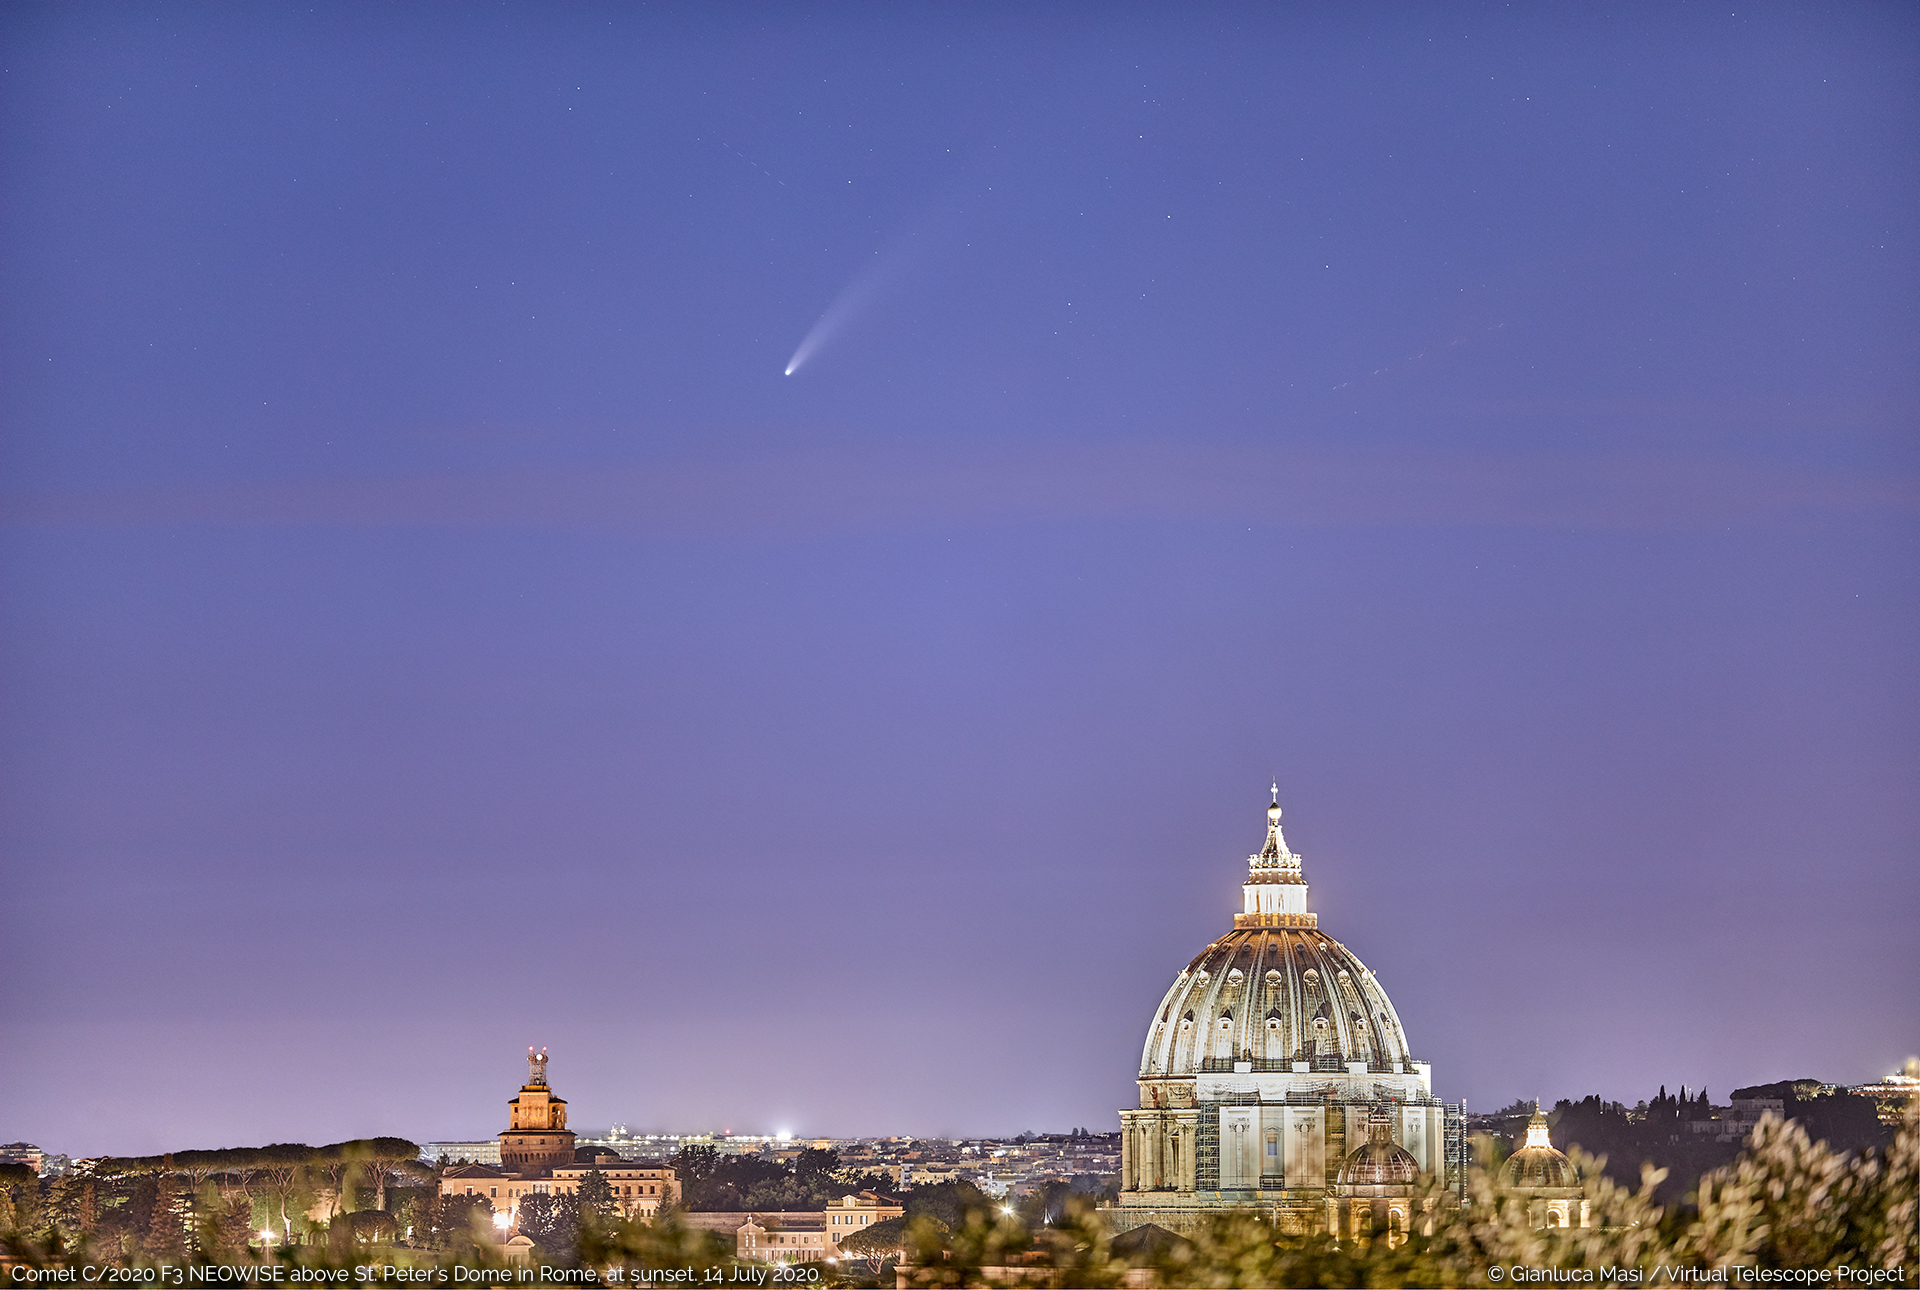 Comet C/2020 F3 NEOWISE is perfectly placed above St. Peters Dome - 14 July 2020.